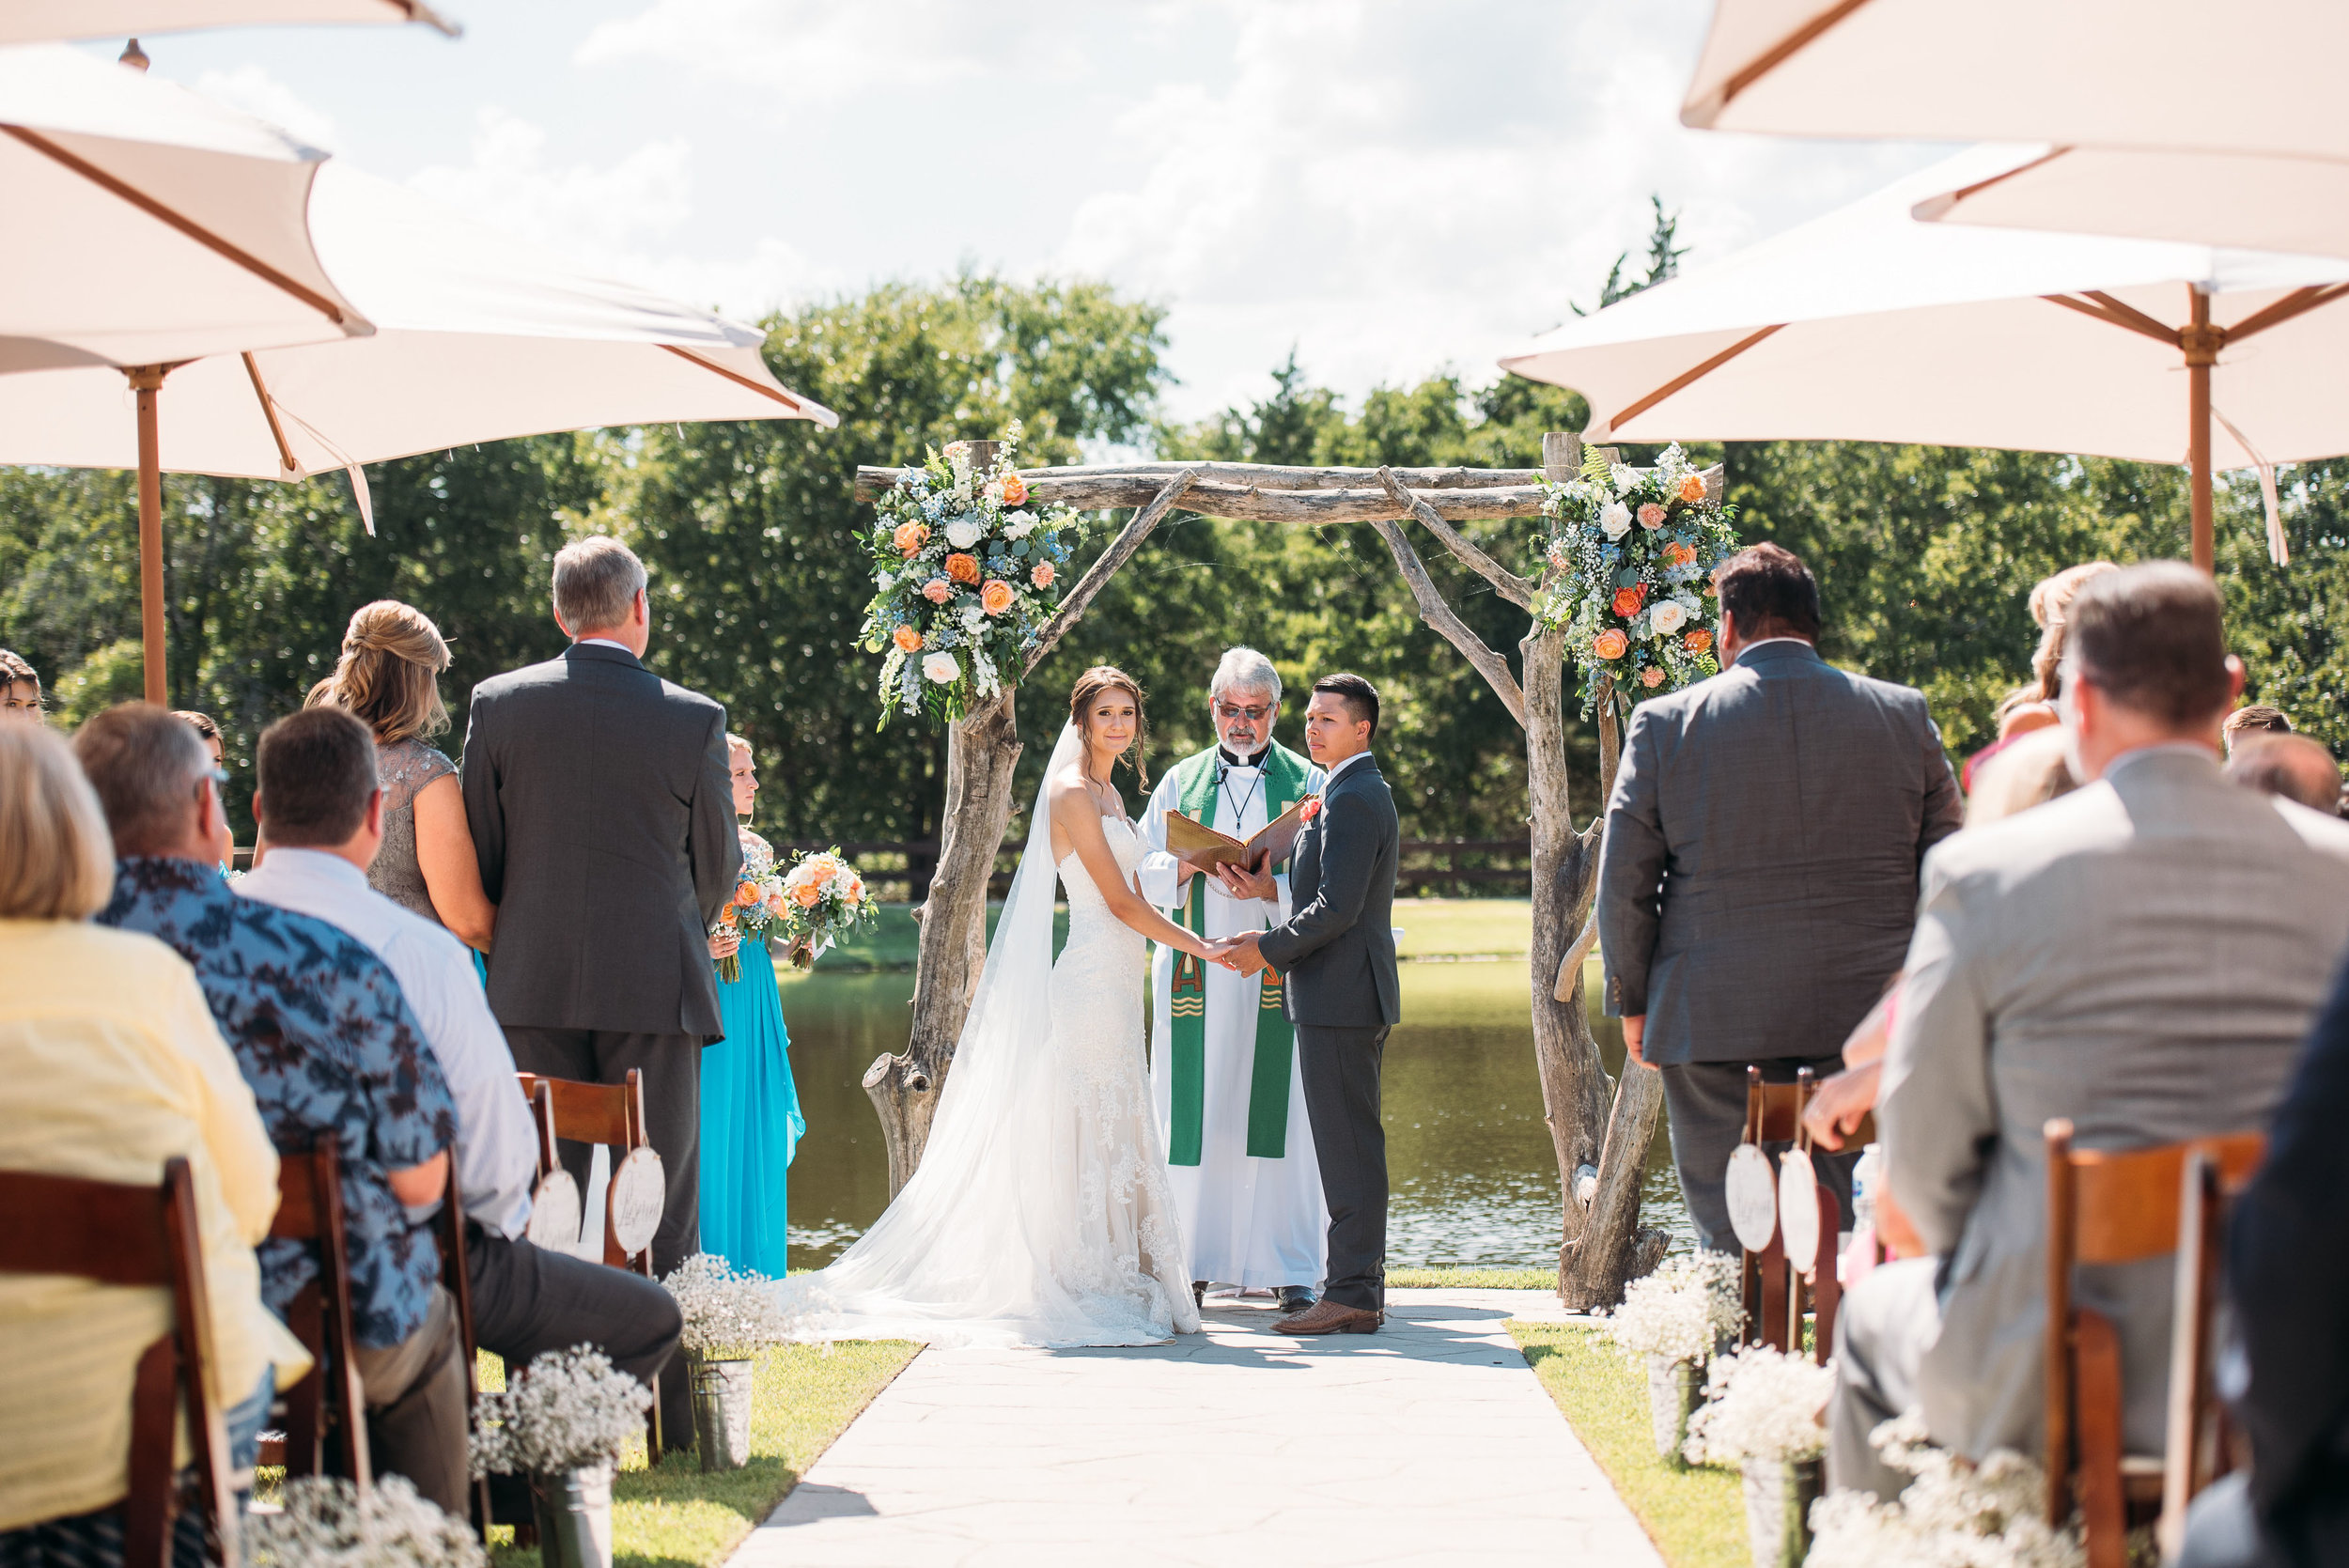 Cameron-Price-Peach-Creek-Ranch-Wedding-Ceremony-Bridals-Engagement-College-Station-Photographer-Videographer-San-Angel-Photo-00-0057.jpg